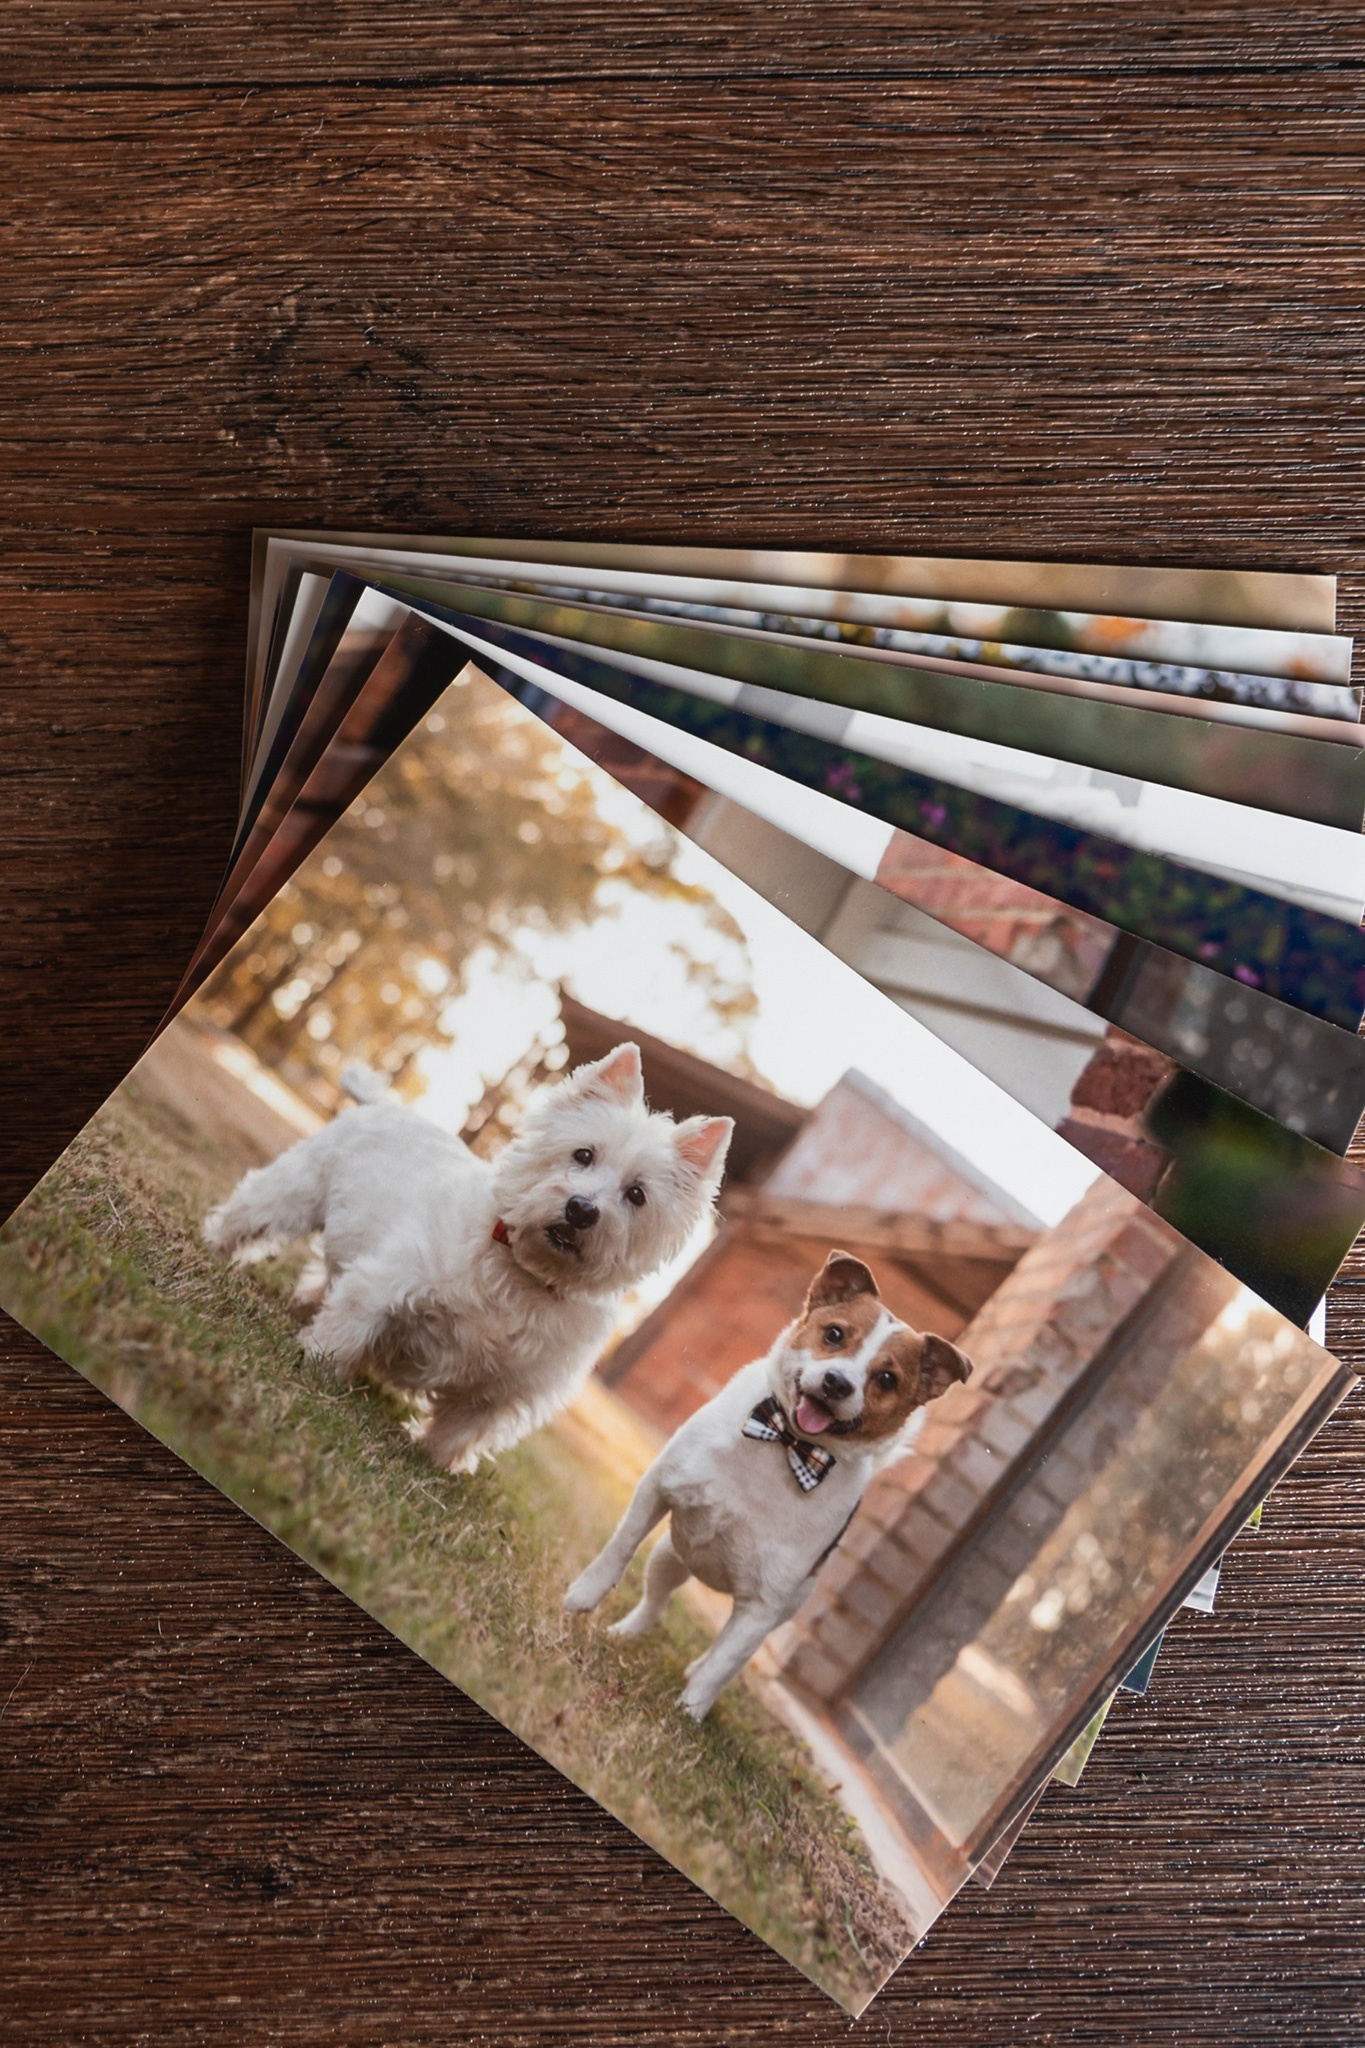 Mounted prints are just one way to display your dog photography by Atlanta dog photographer CM Bryson